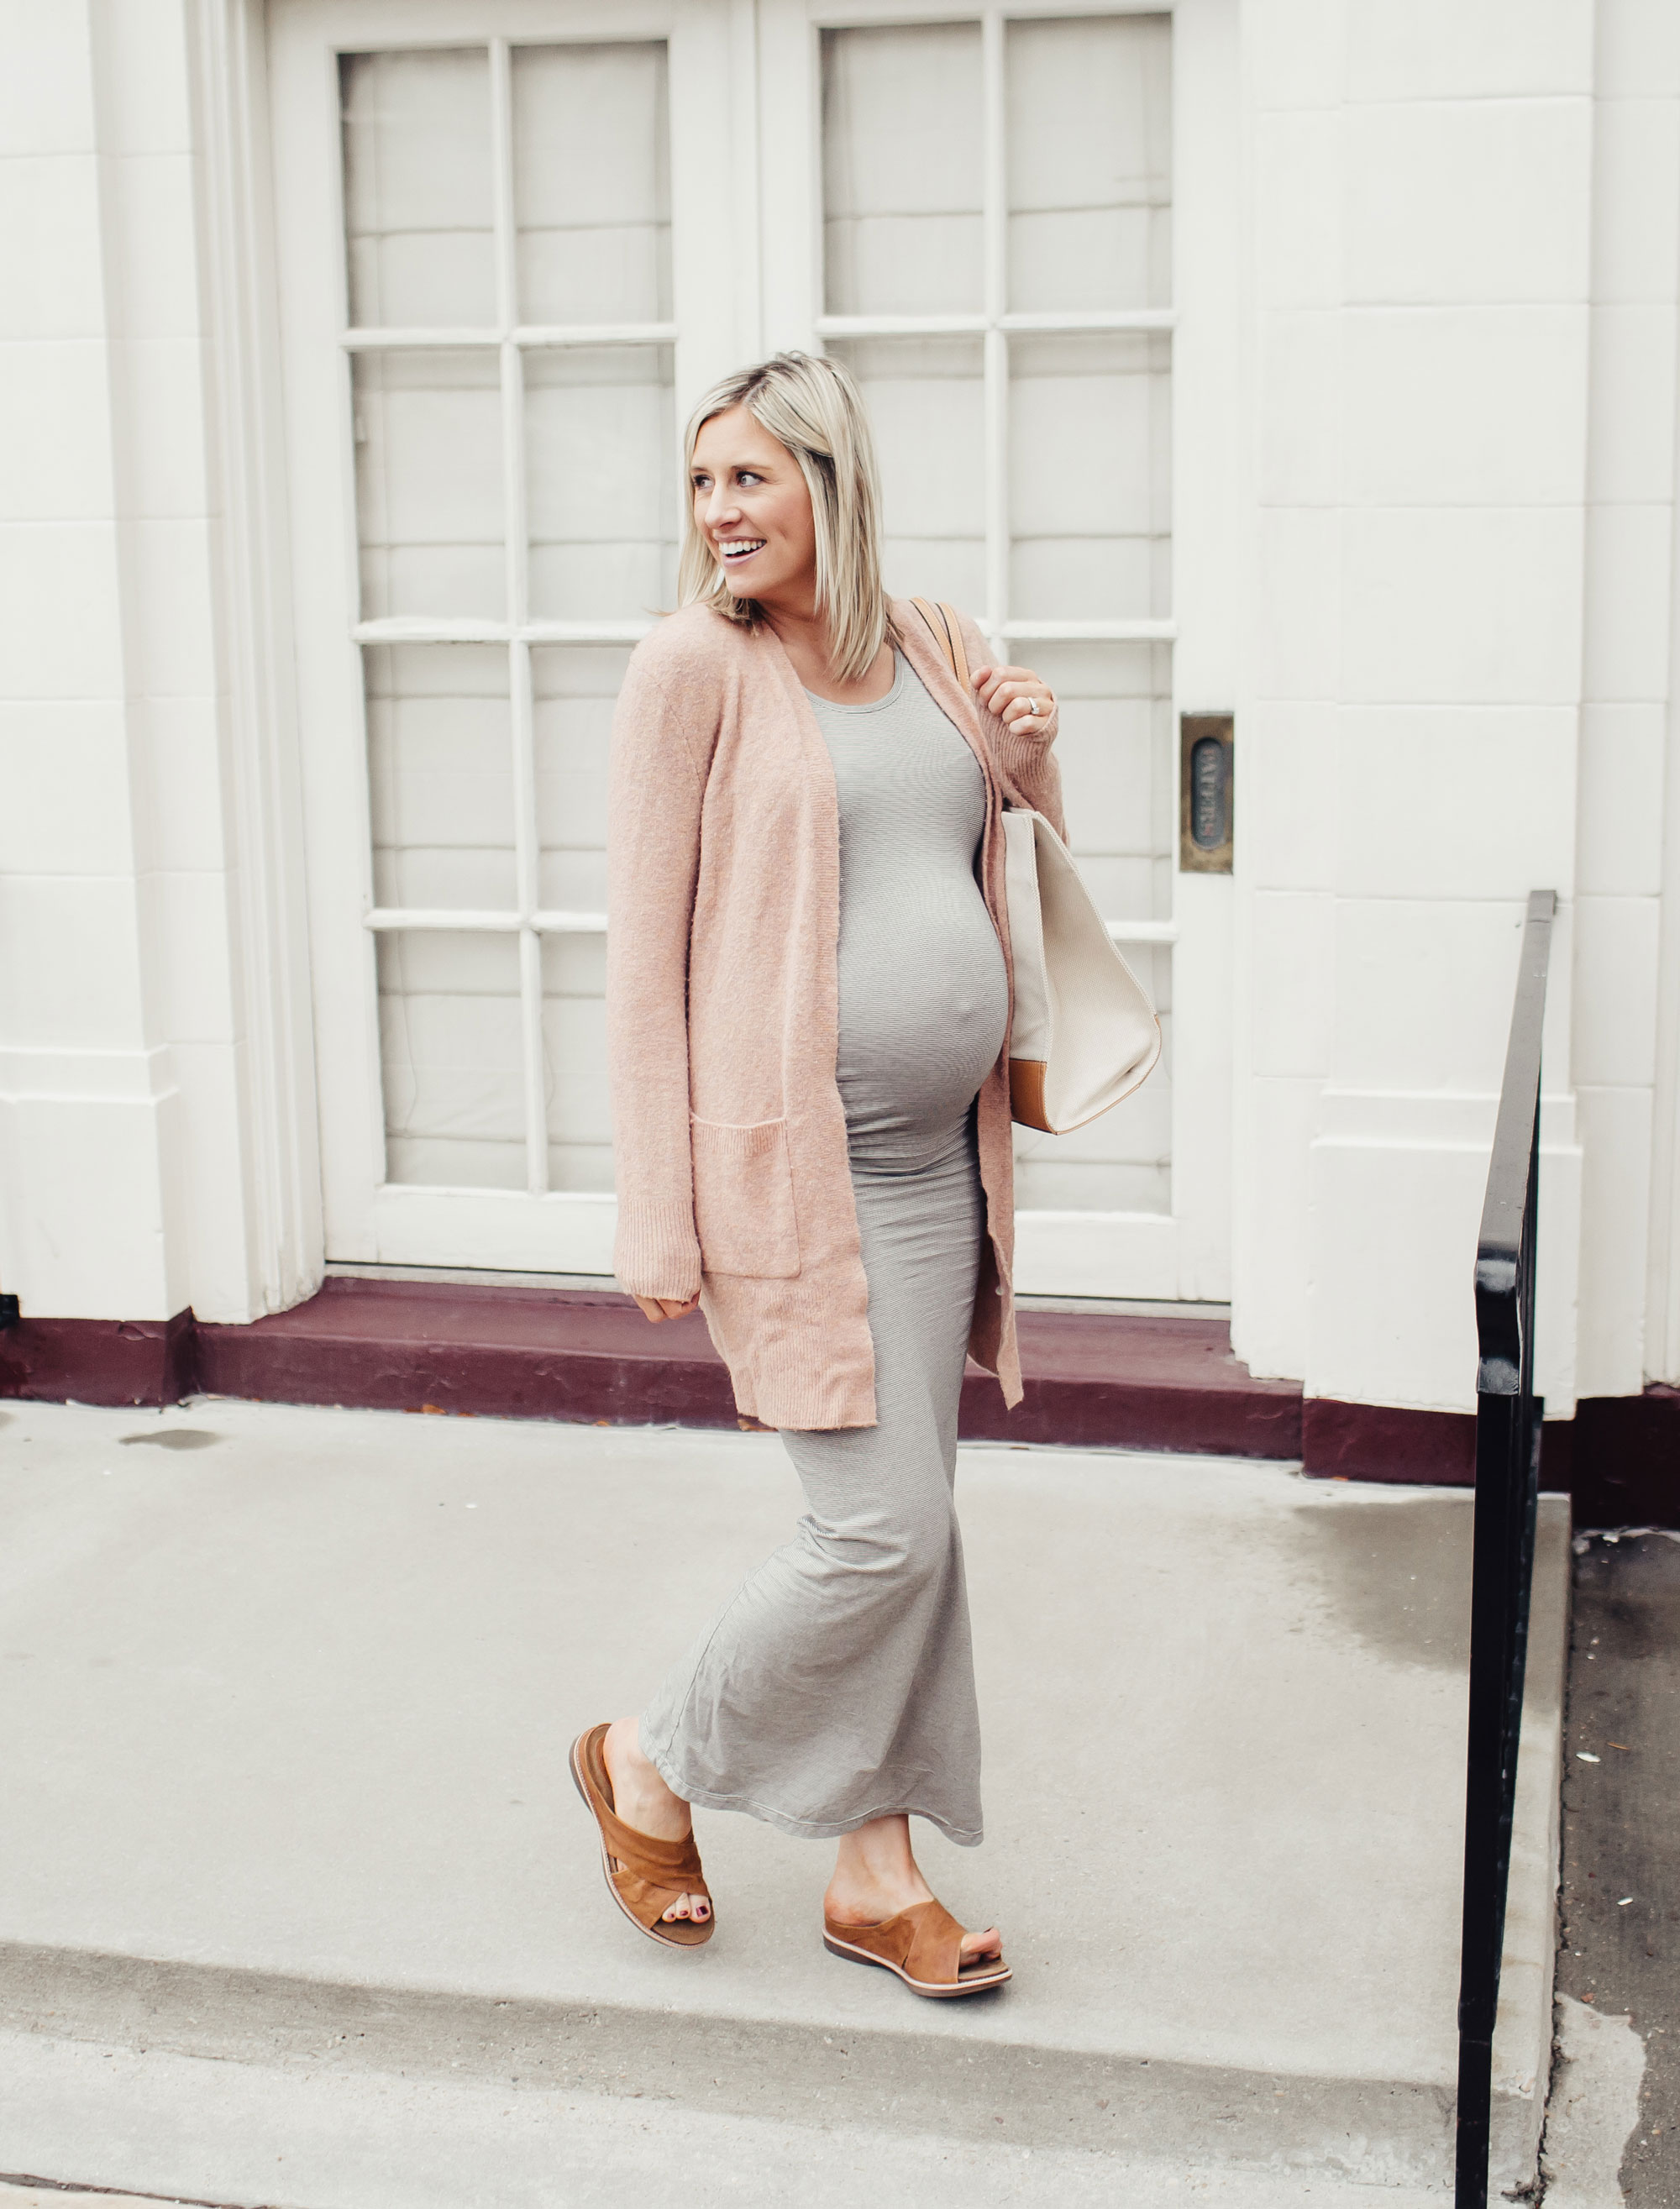 Third Trimester Update + Three Maternity Capsule Wardrobe Tips | Little Miss Fearless